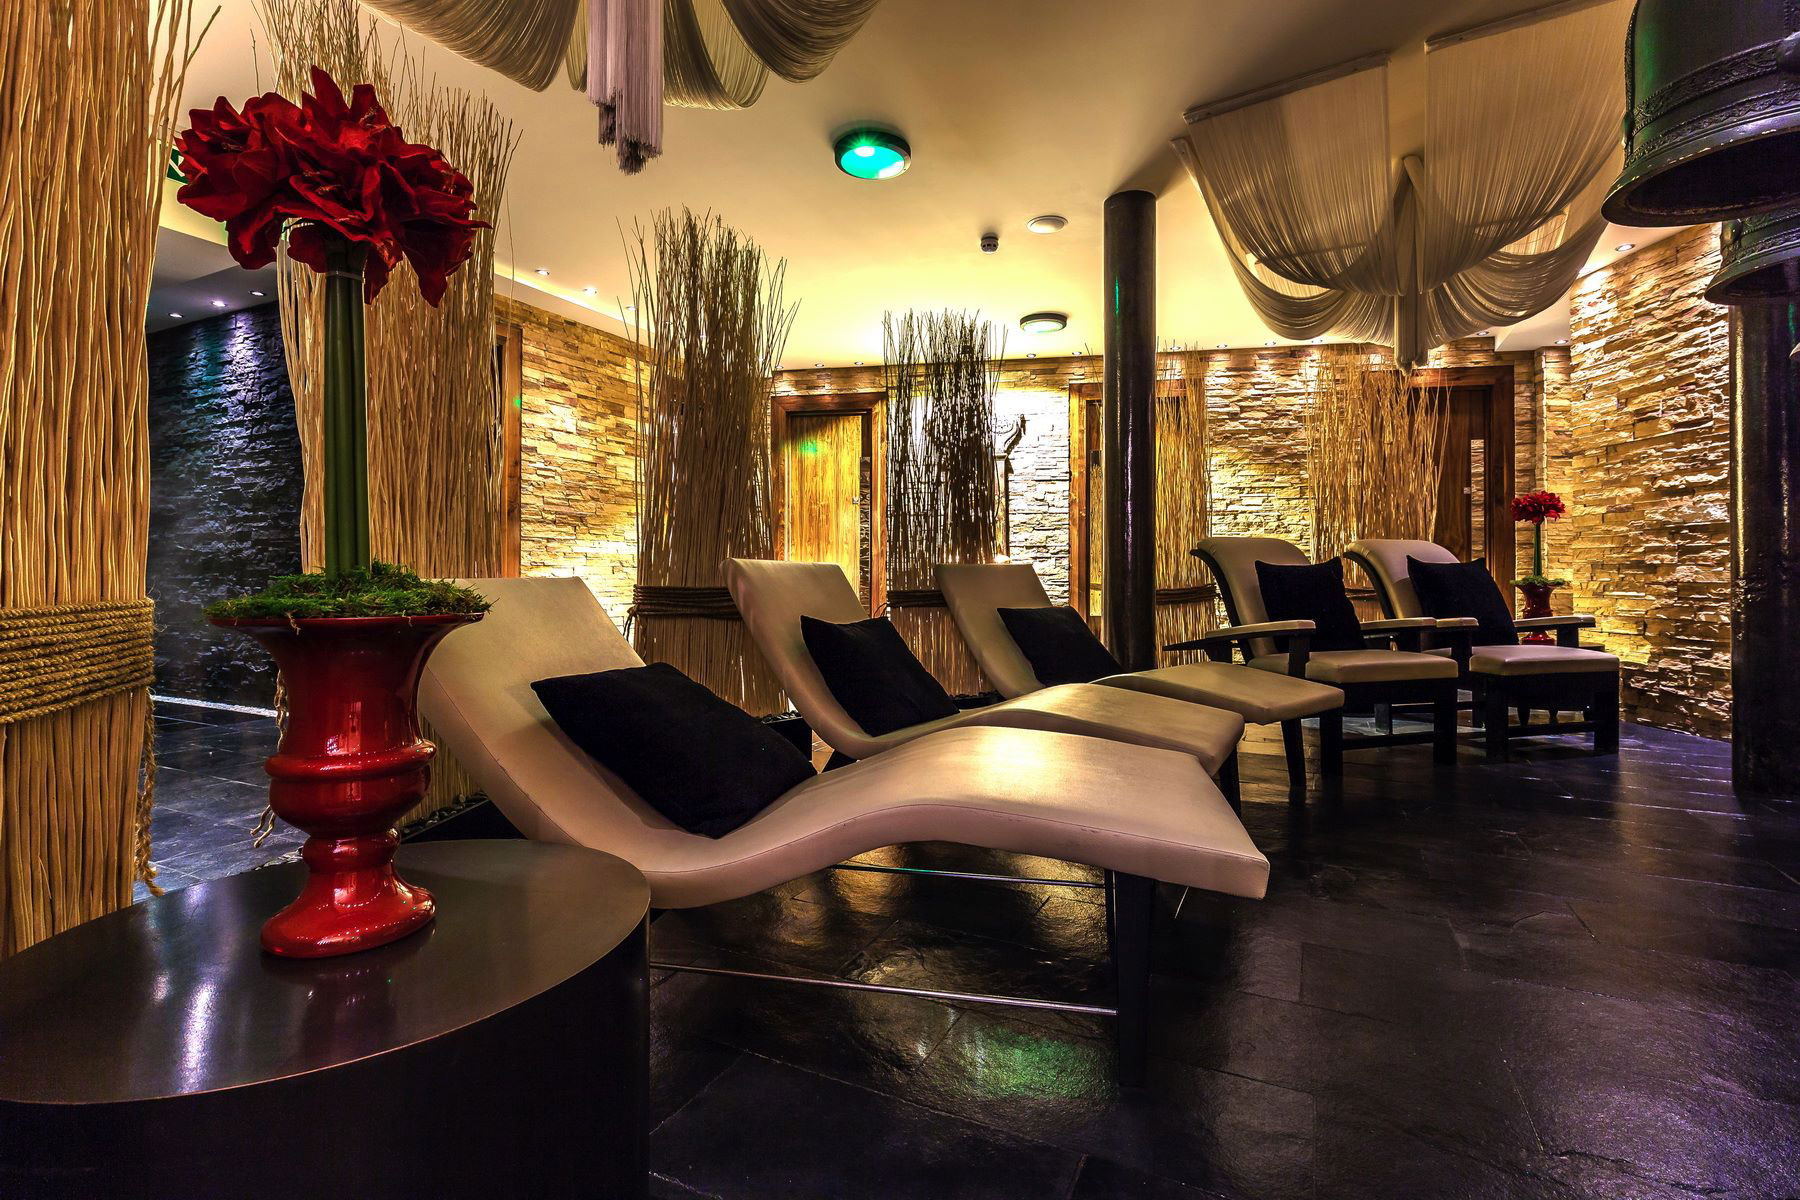 Londons Thai Square Spa Gears Up For Valentines Day